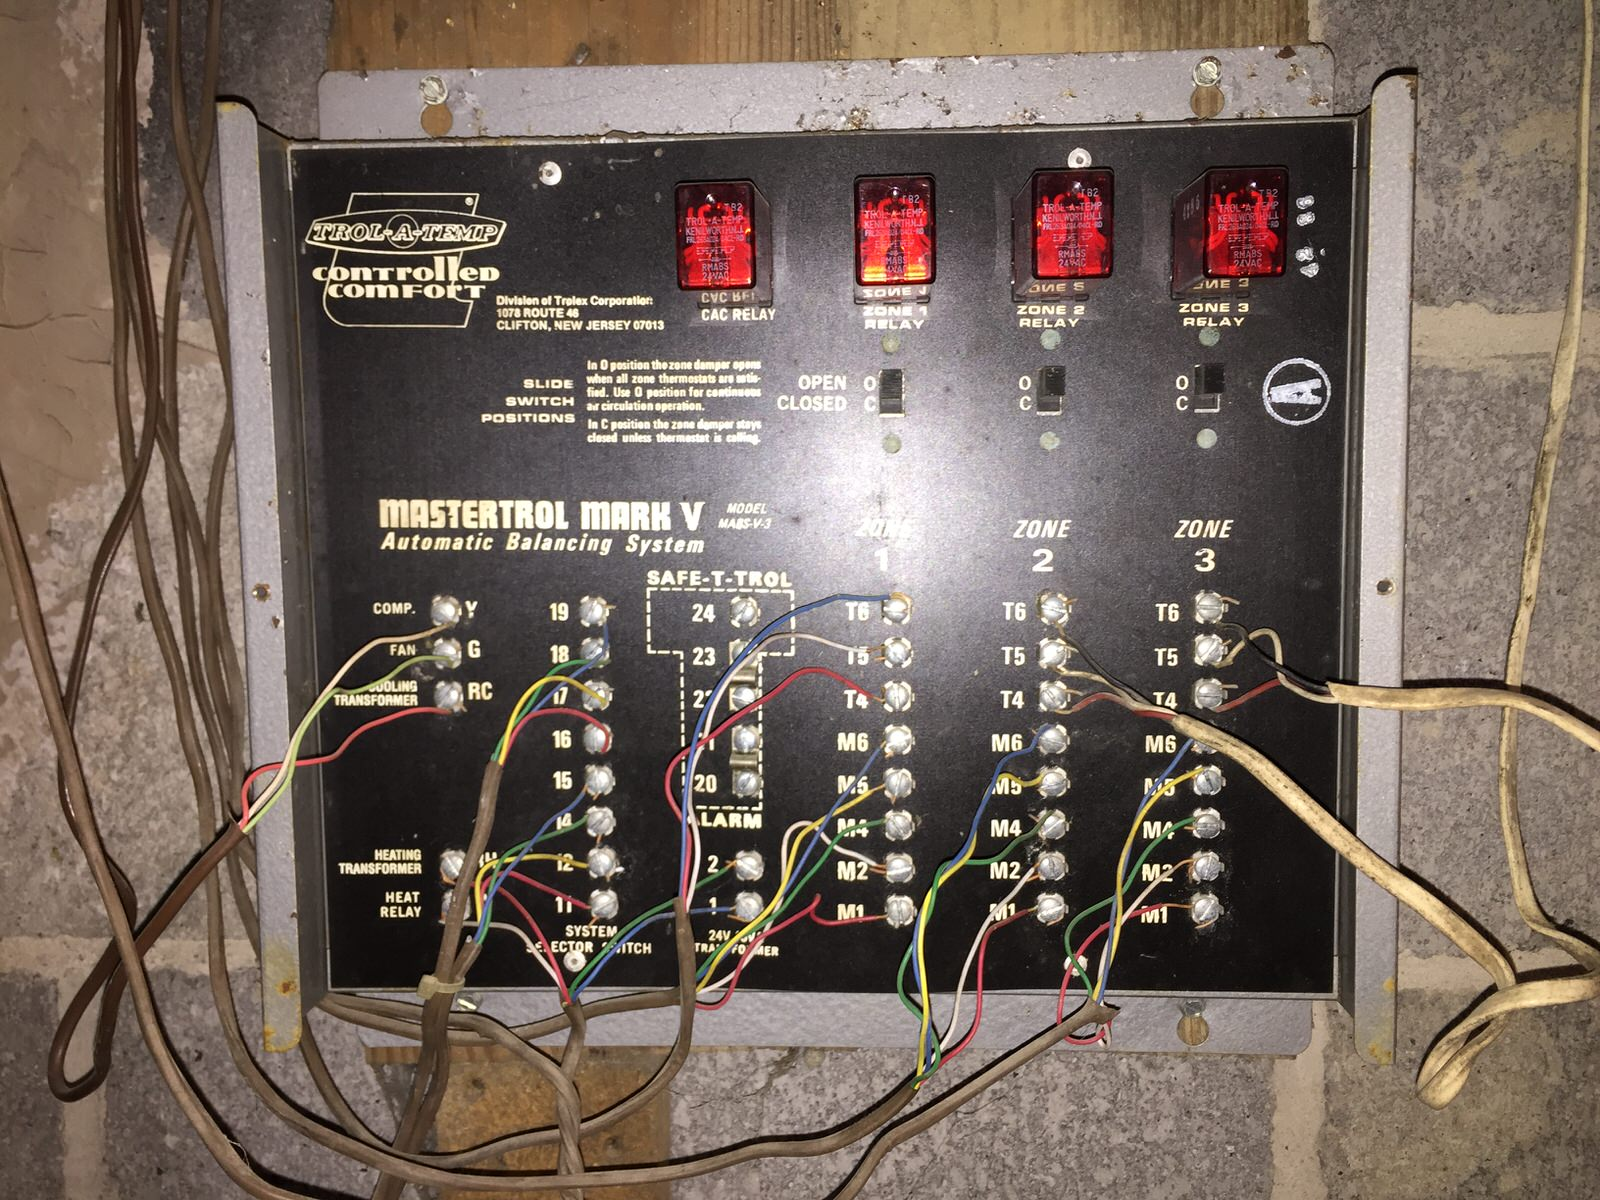 Wiring Honeywell HZ322 from a Trol A Temp Mastertrol Mark